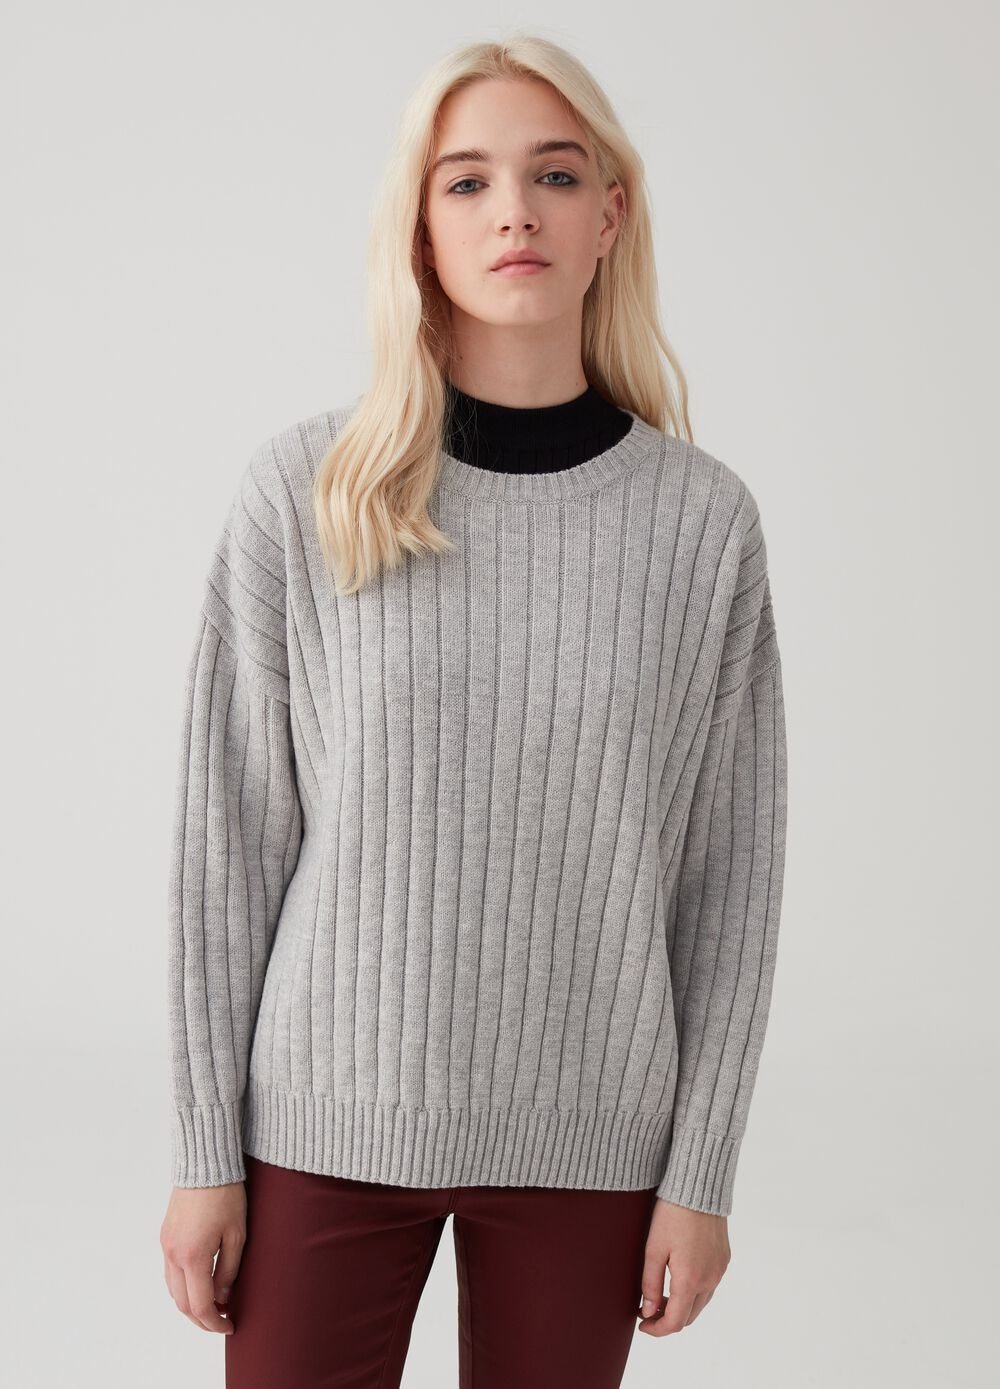 Chunky ribbed knit pullover